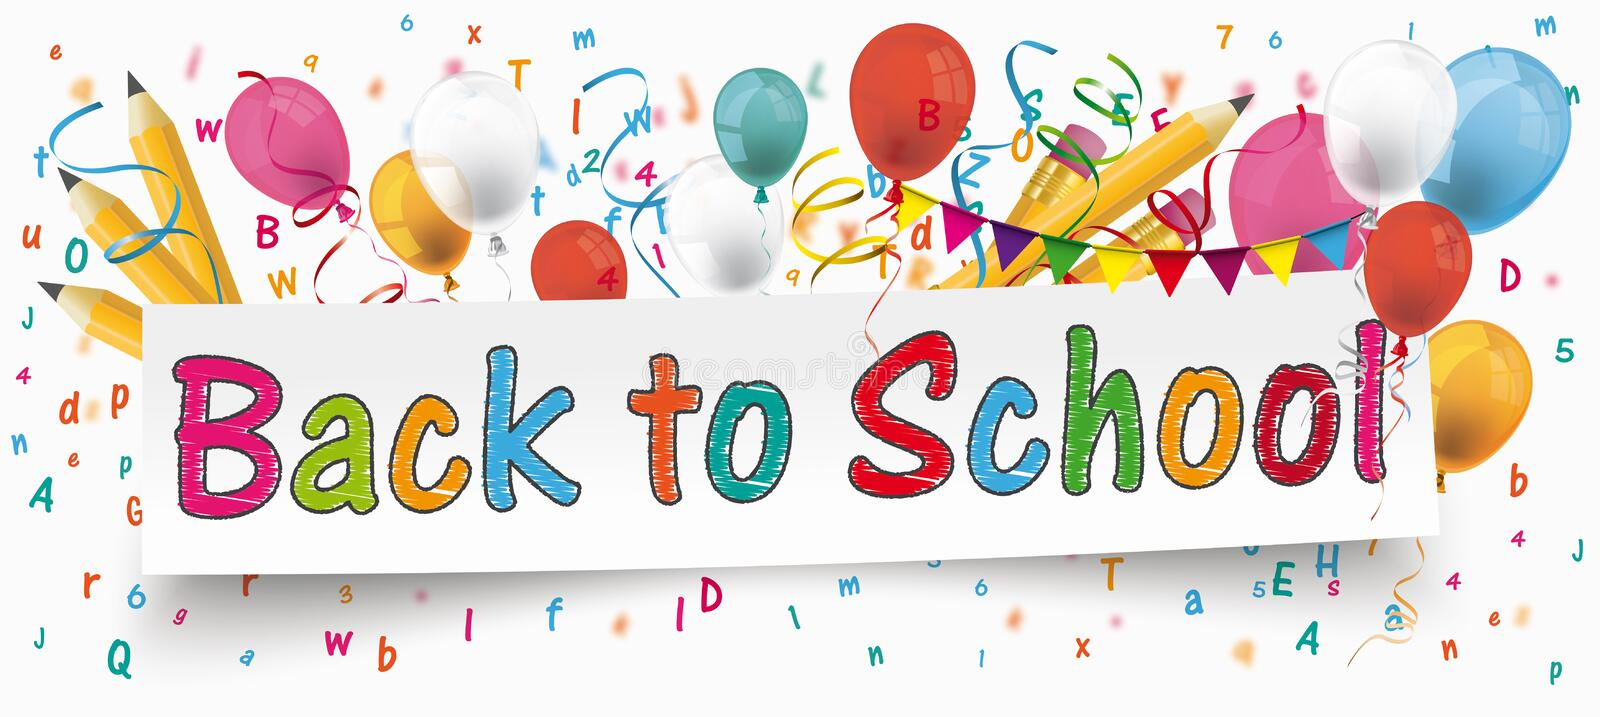 Back to School Banner Balloons Buntings Letters Pencils. White paper banner with pencils, bunting, balloons, letters and text Back to School vector illustration